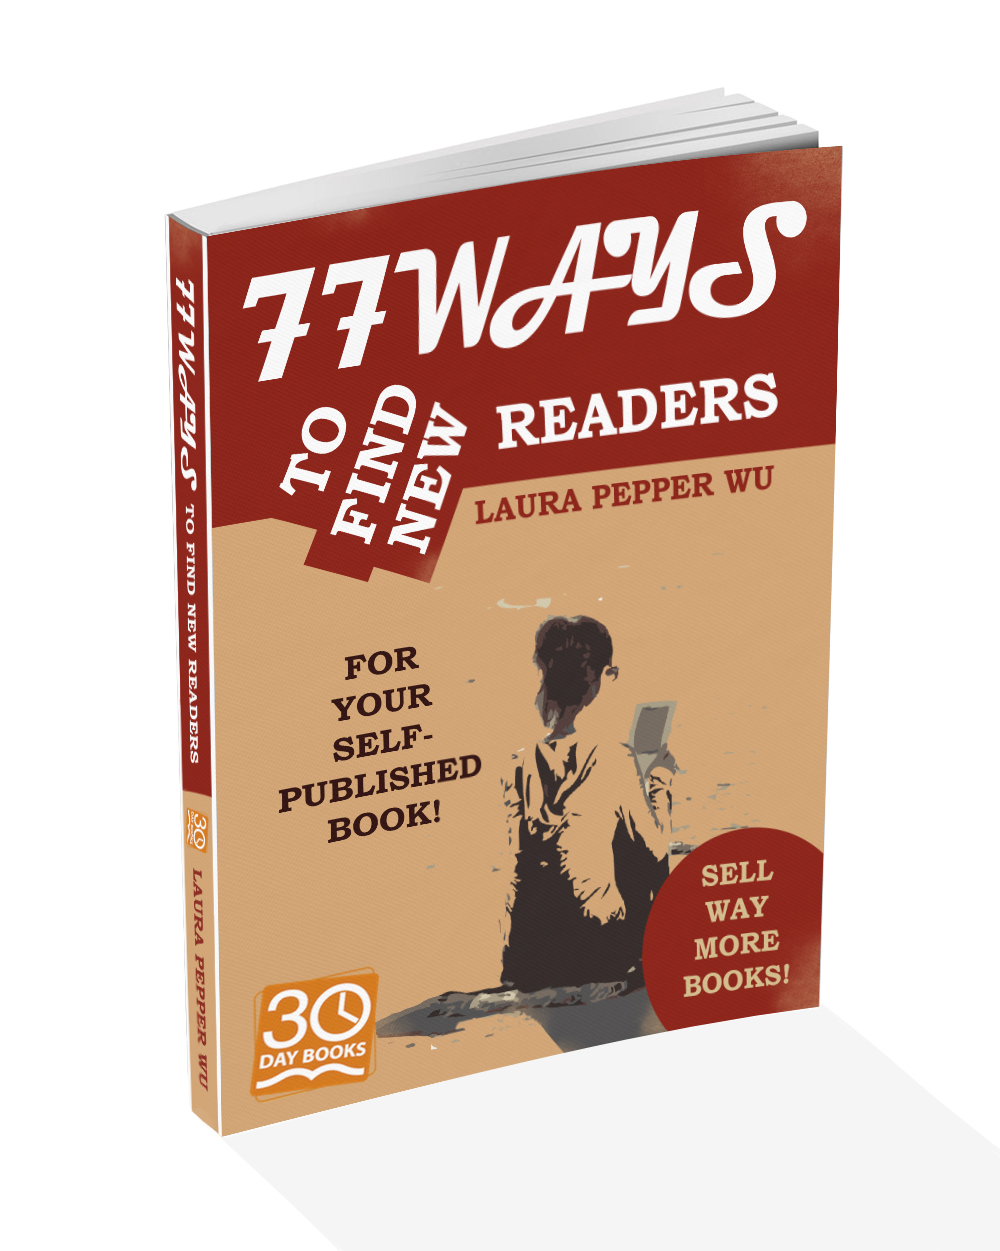 77 Ways To Find New Readers